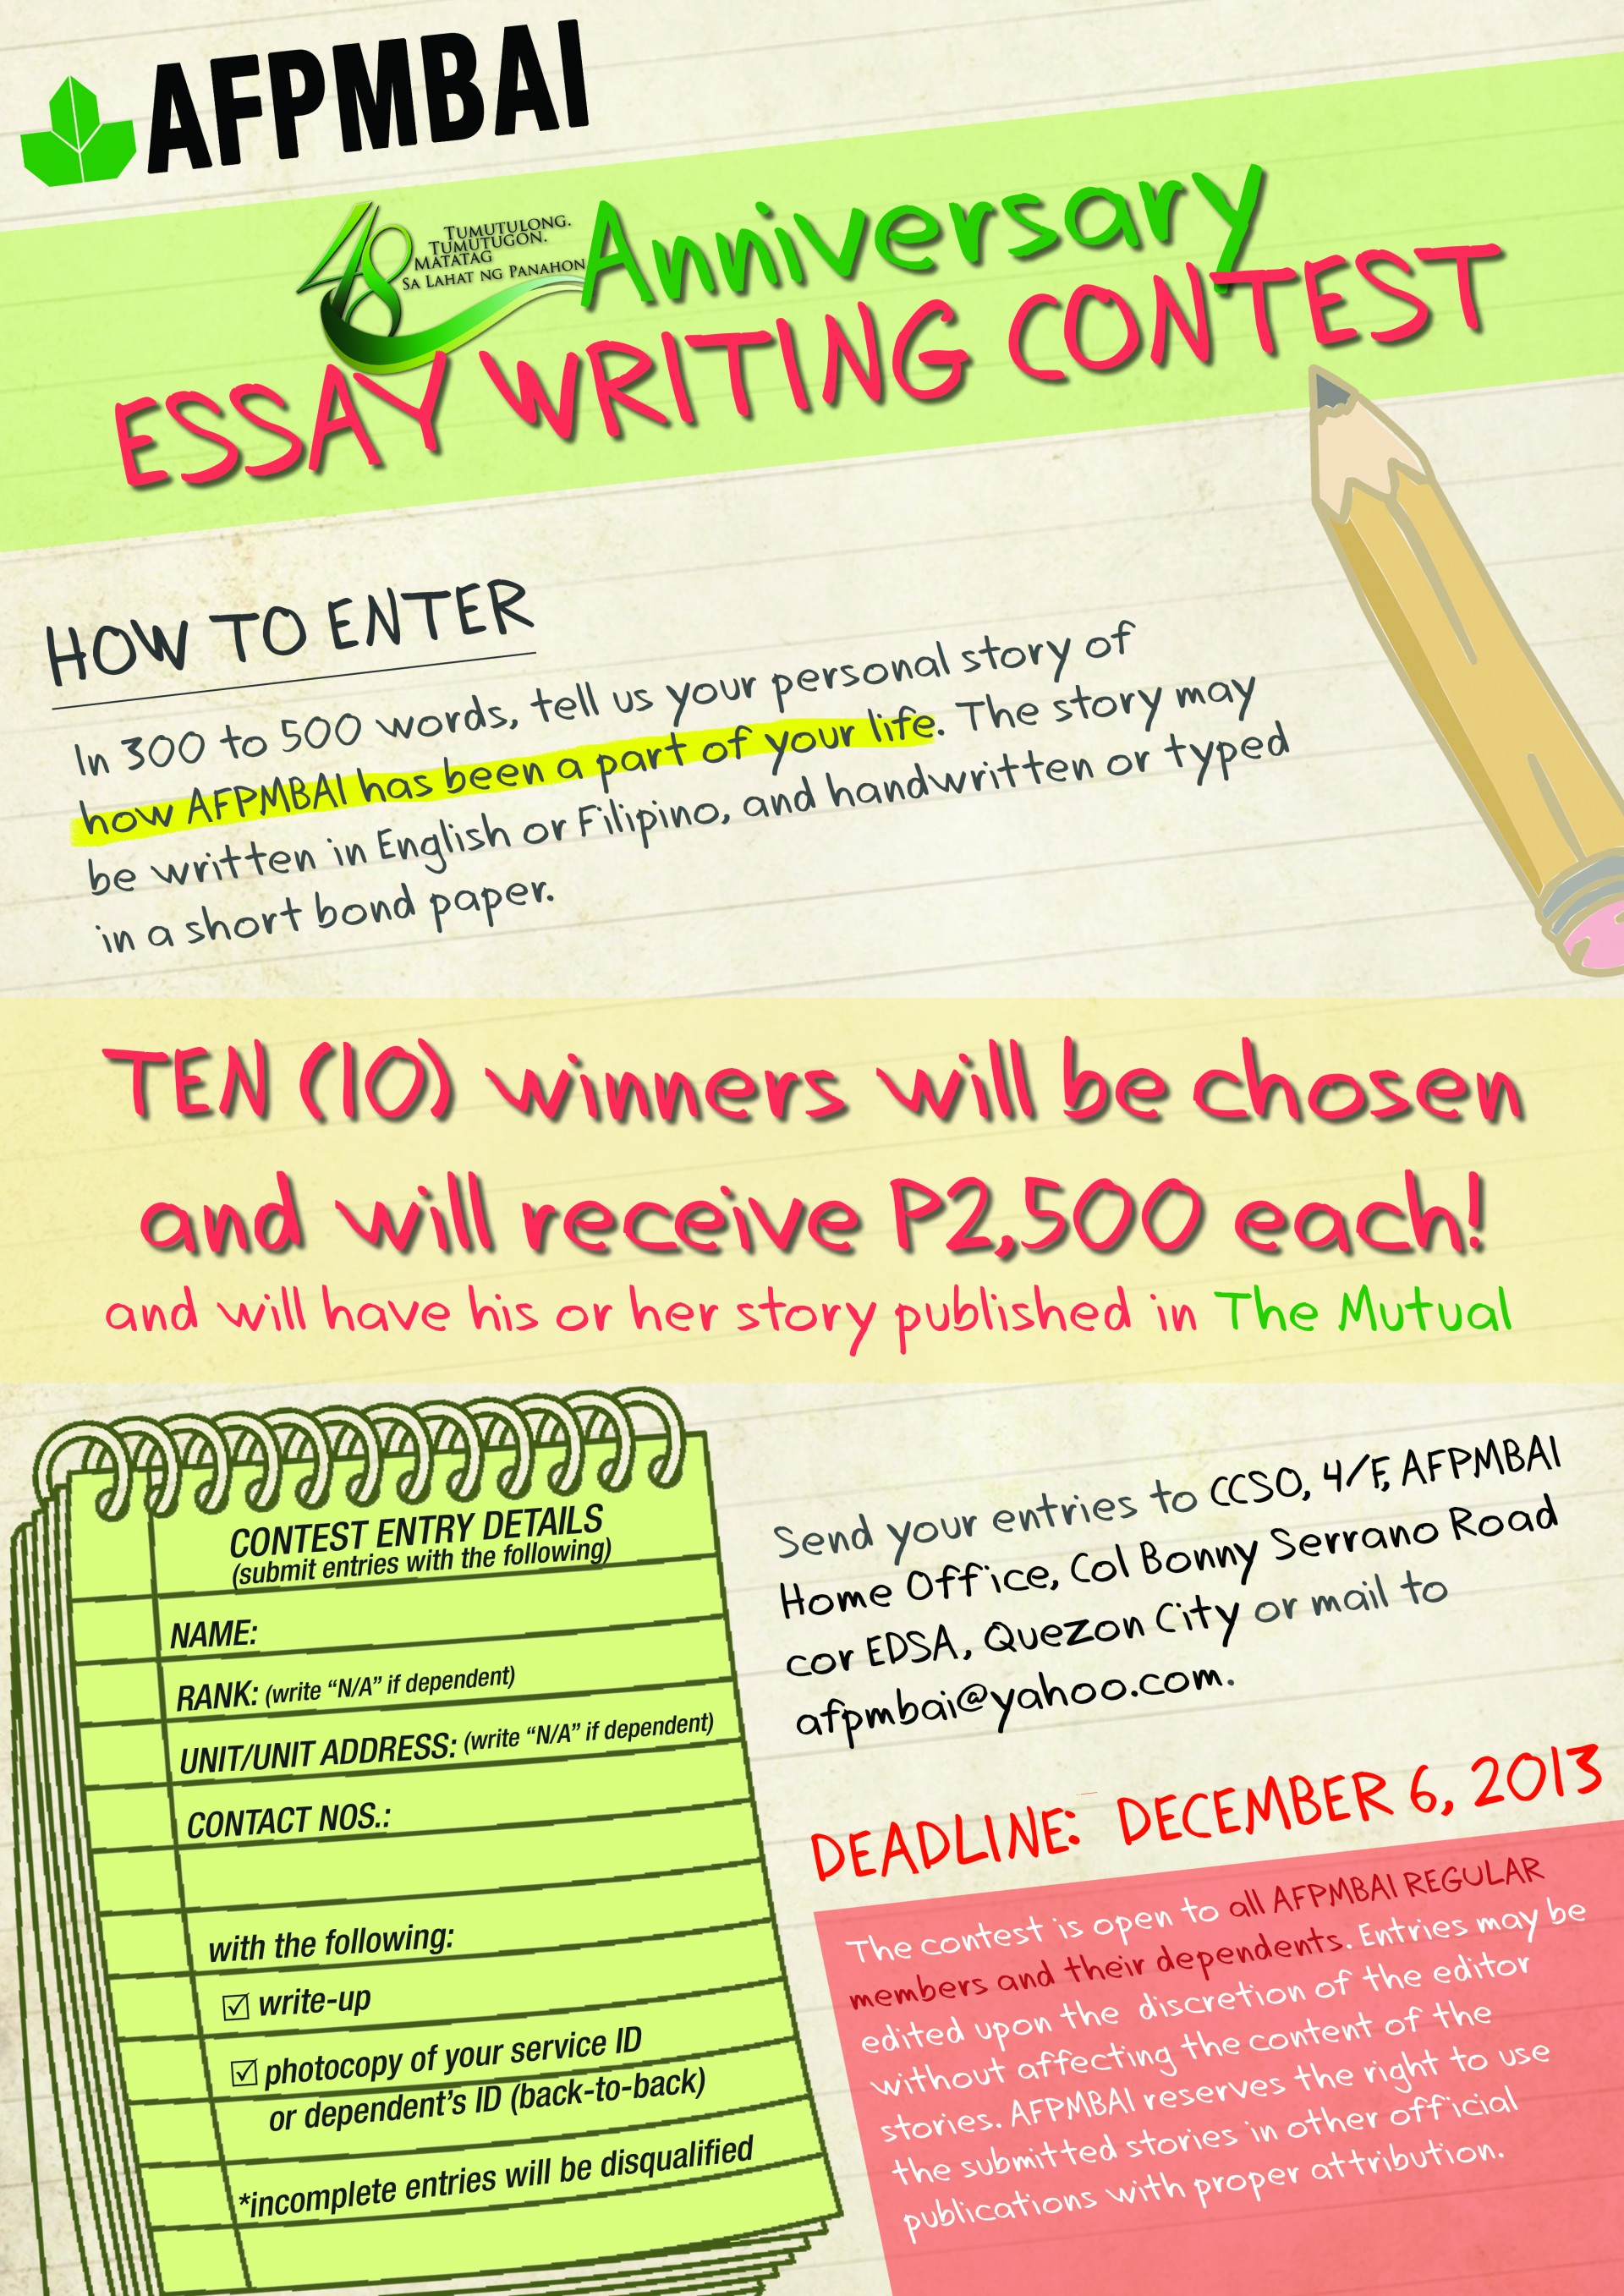 003 Essay Example Writing Contest Competition Essays About For Nutrition Month P Objectives Rubrics Philippines Mechanics Criteria Tips Incredible College Students By Essayhub Sample 1920